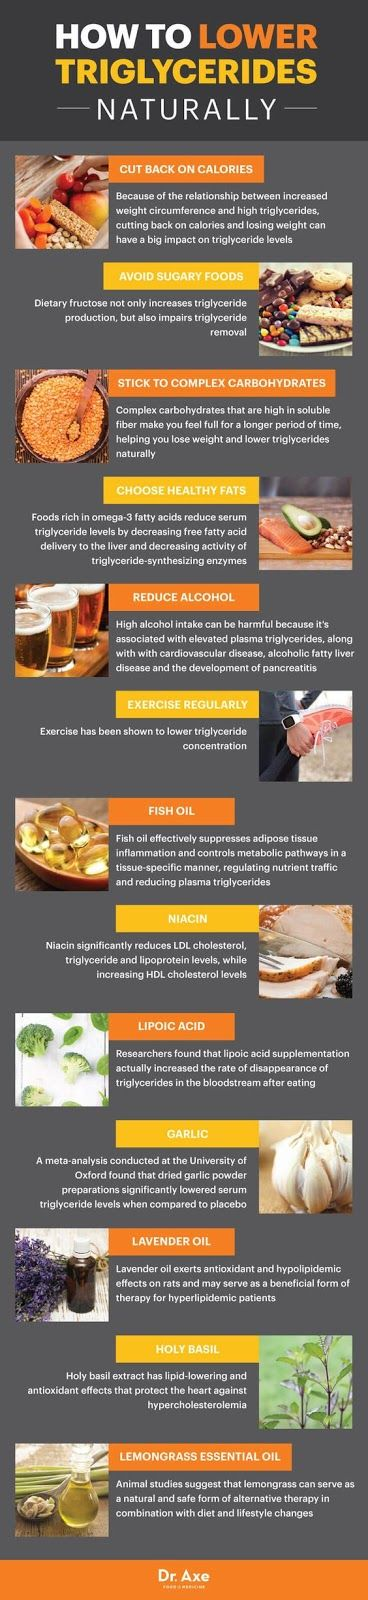 How to Naturally Lower Triglycerides [Infographic]